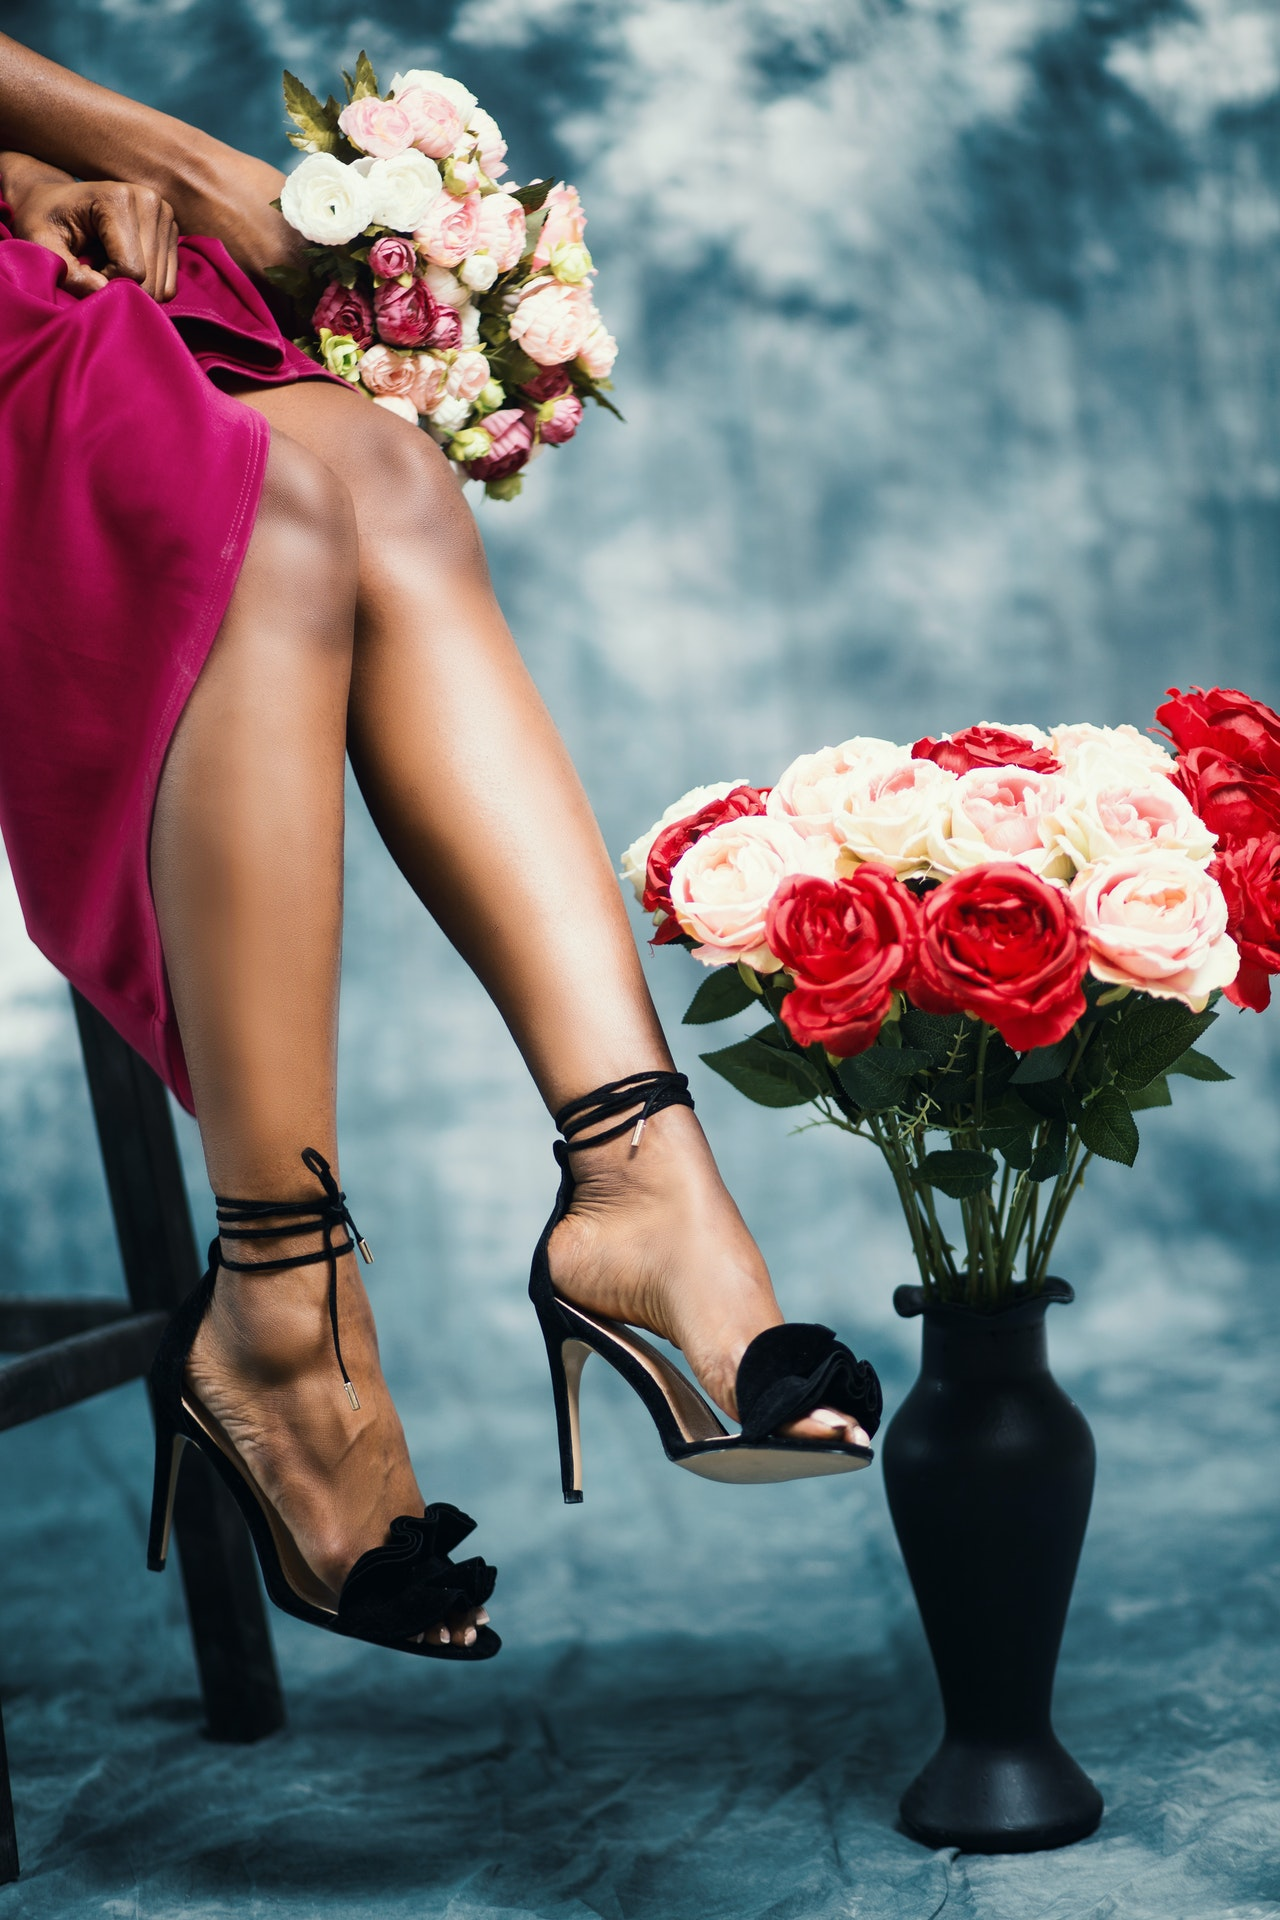 Cosmetic Treatment Options for Varicose Veins